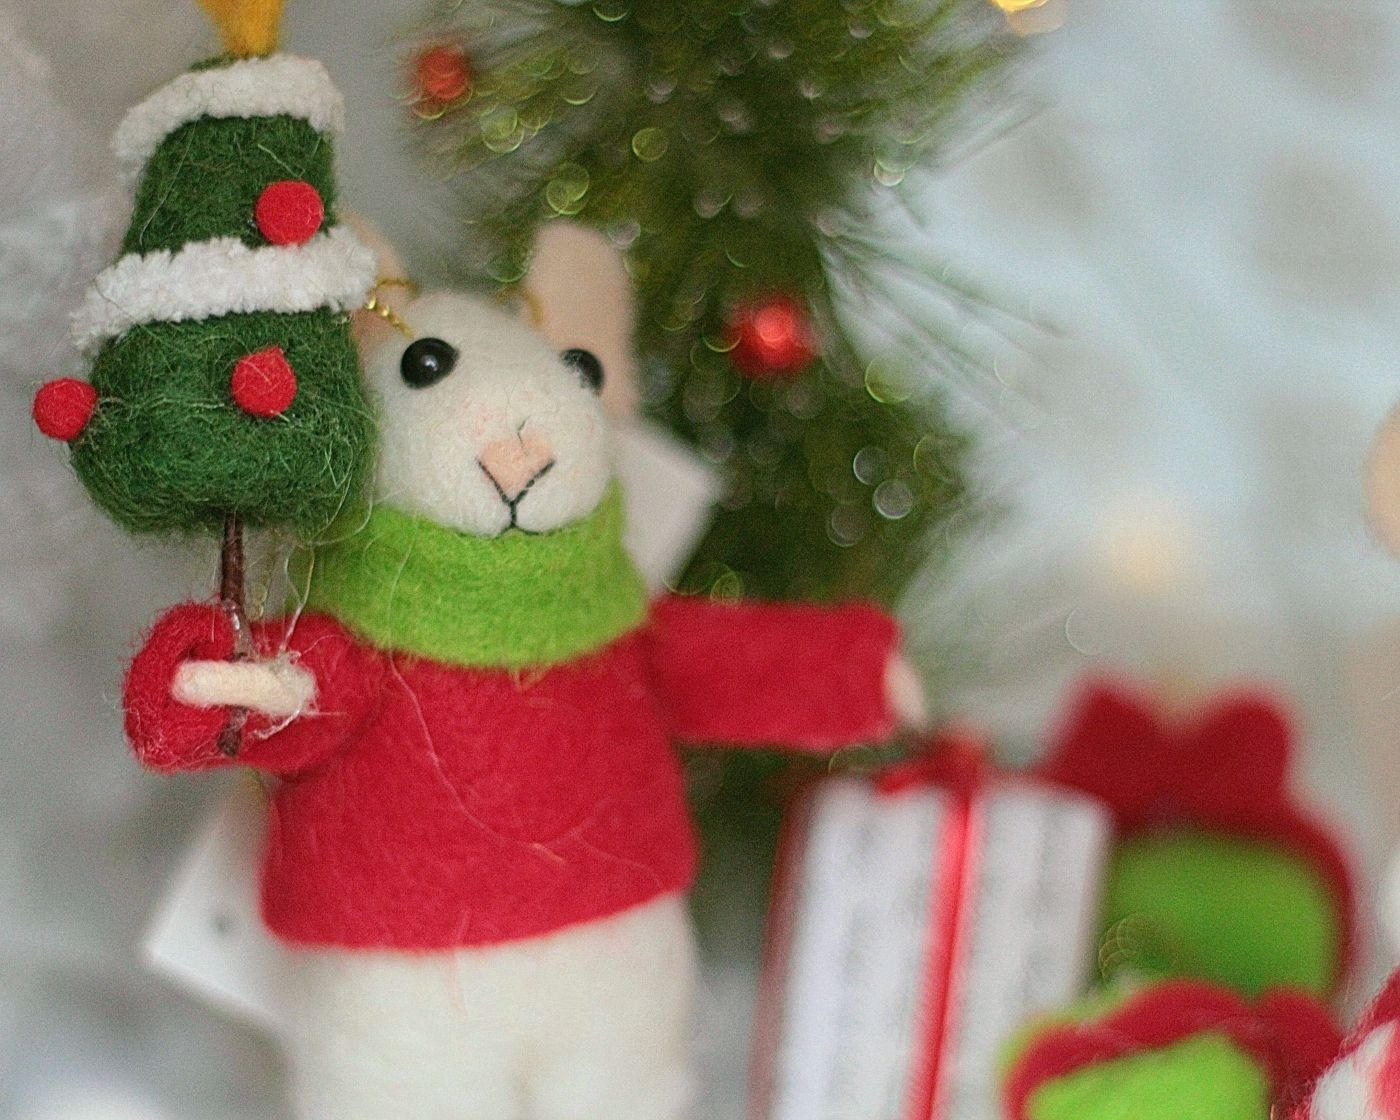 A felted wool mouse, festively dressed up in red & green for the season, holding a Christmas tree.